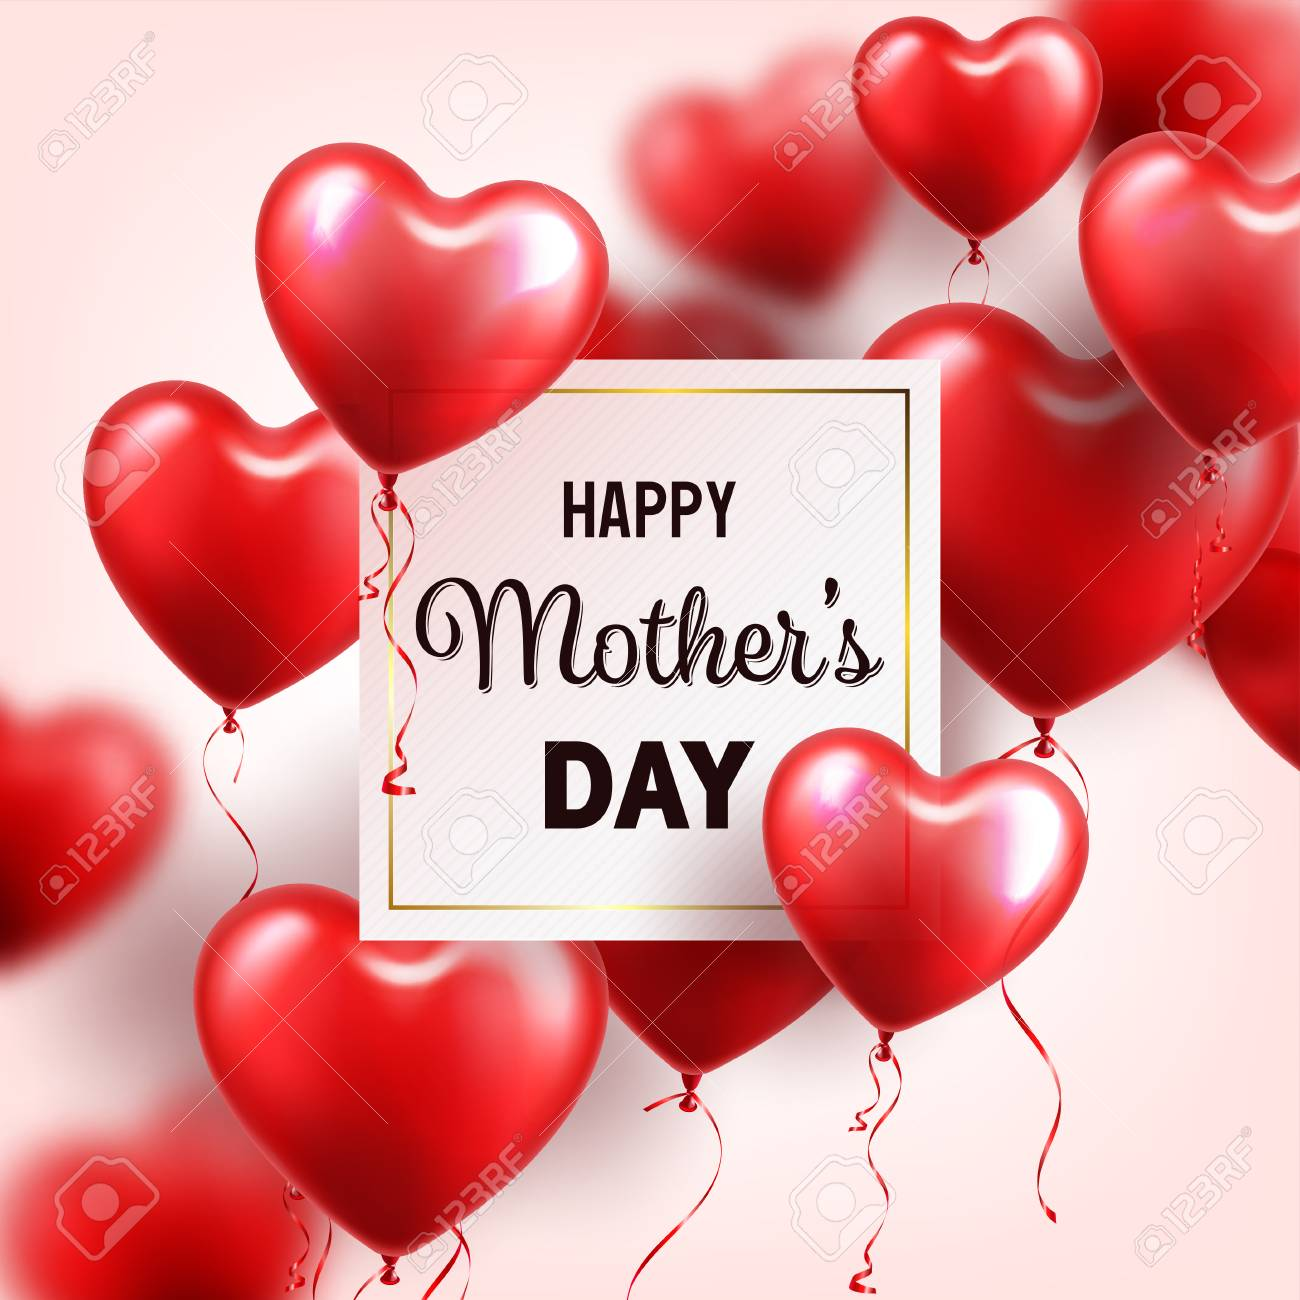 mothers day background with red hearts balloons greeting card